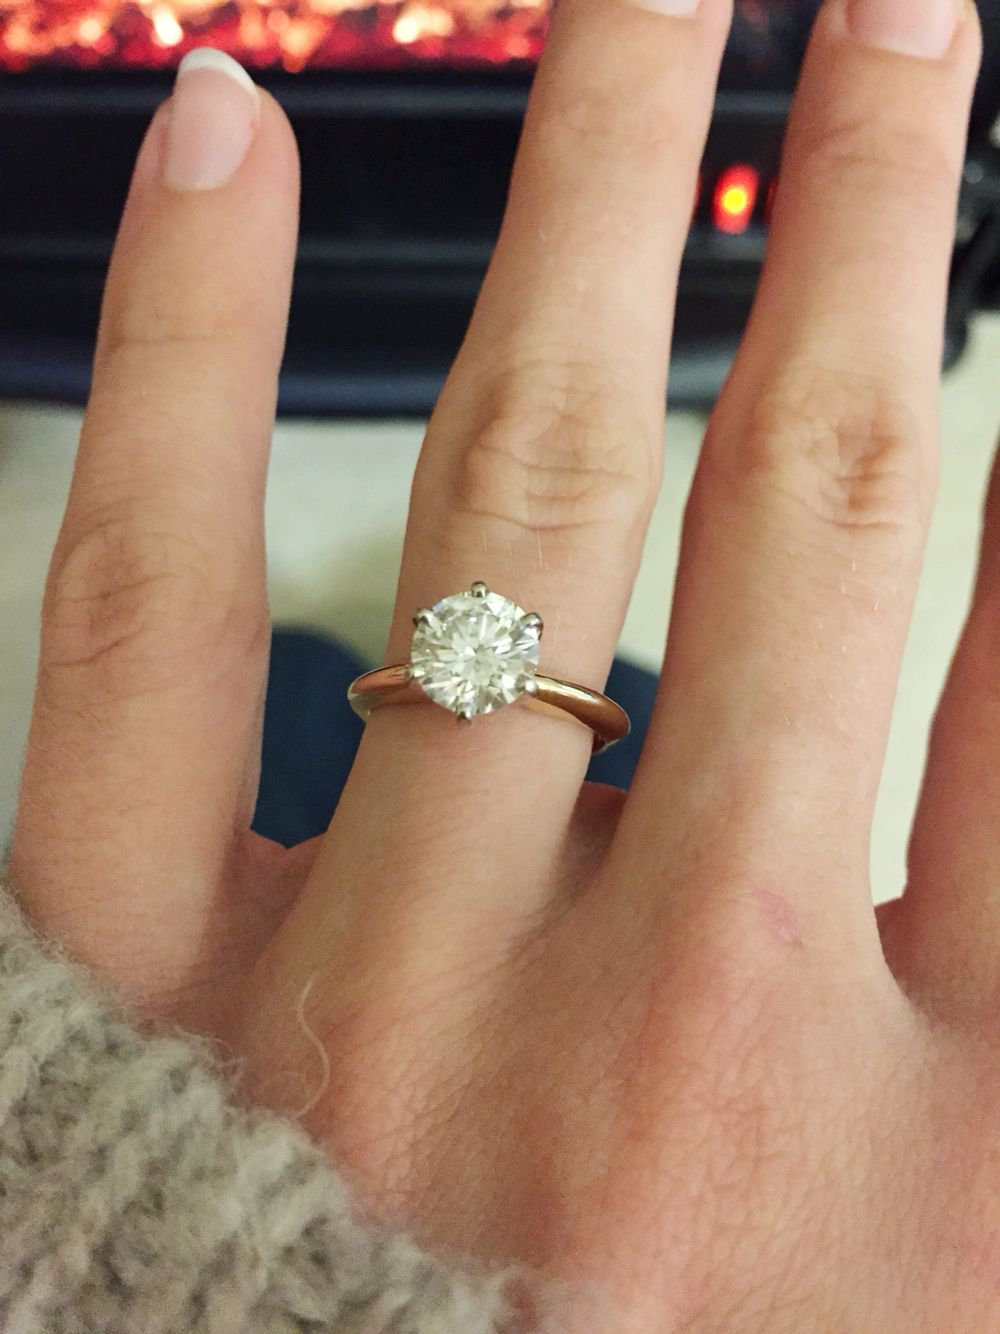 My engagement ring! It's just too perfect. Can't stop ...